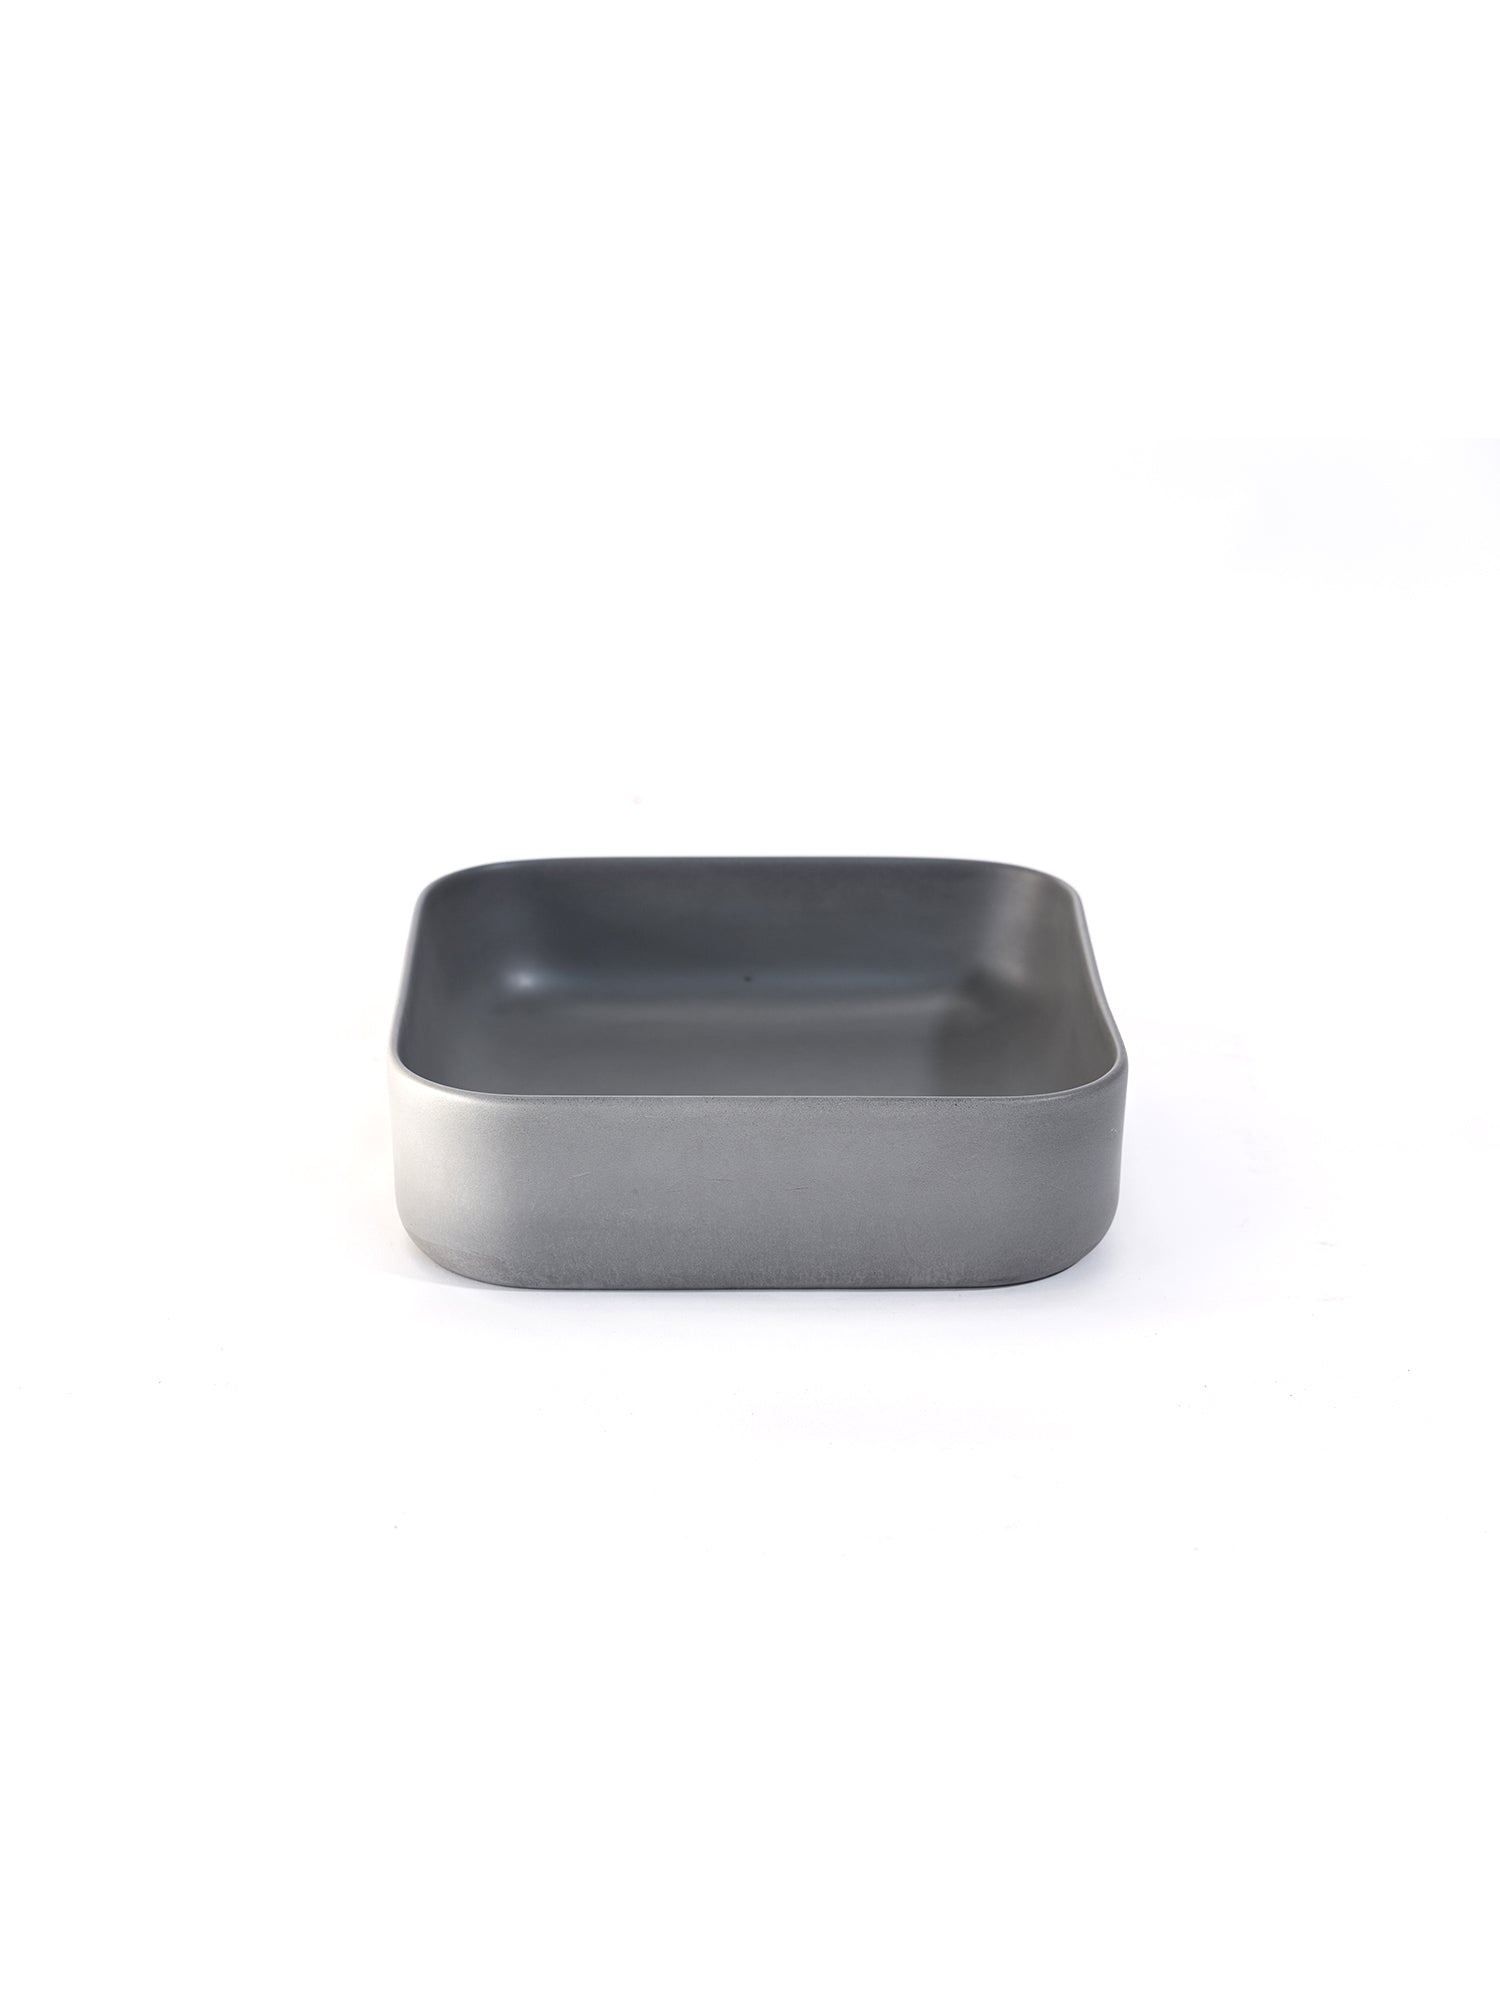 Cube Concrete Countertop Basin